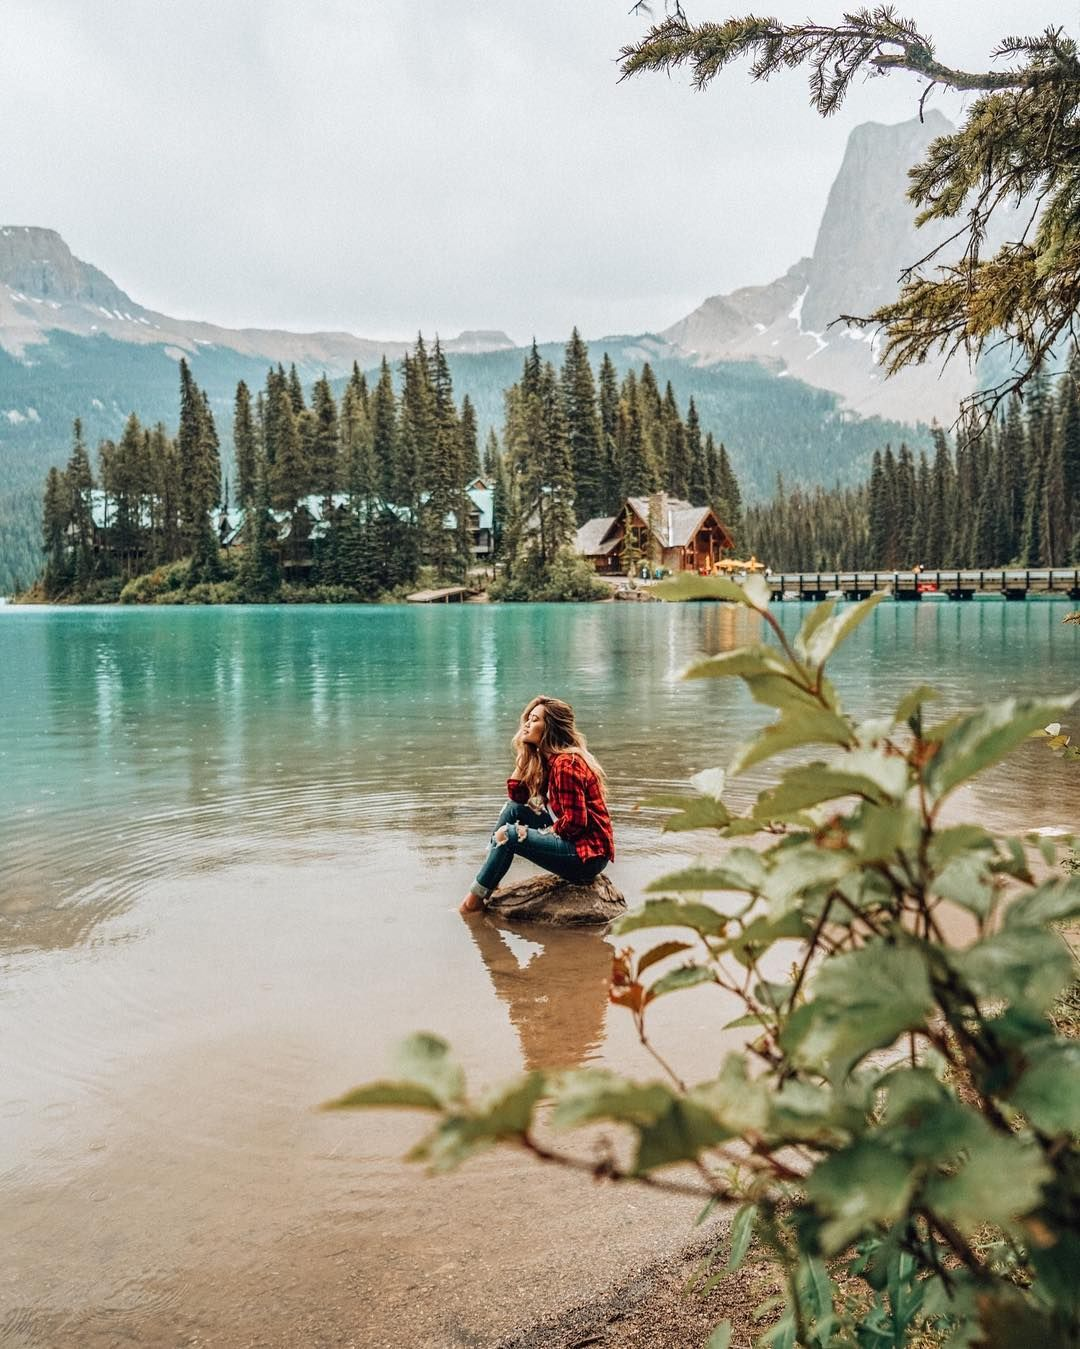 Emerald Lake Banff National Park Yoho Calgary Alberta Travel Style Kayak Outdoors Adventure In Opt Instagram